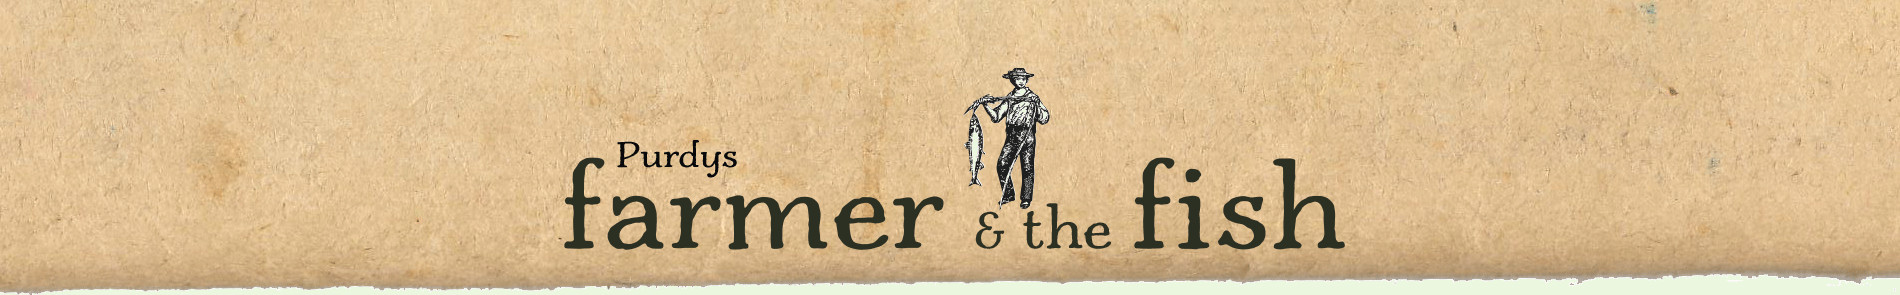 Farmer and the Fish logo on antique paper background